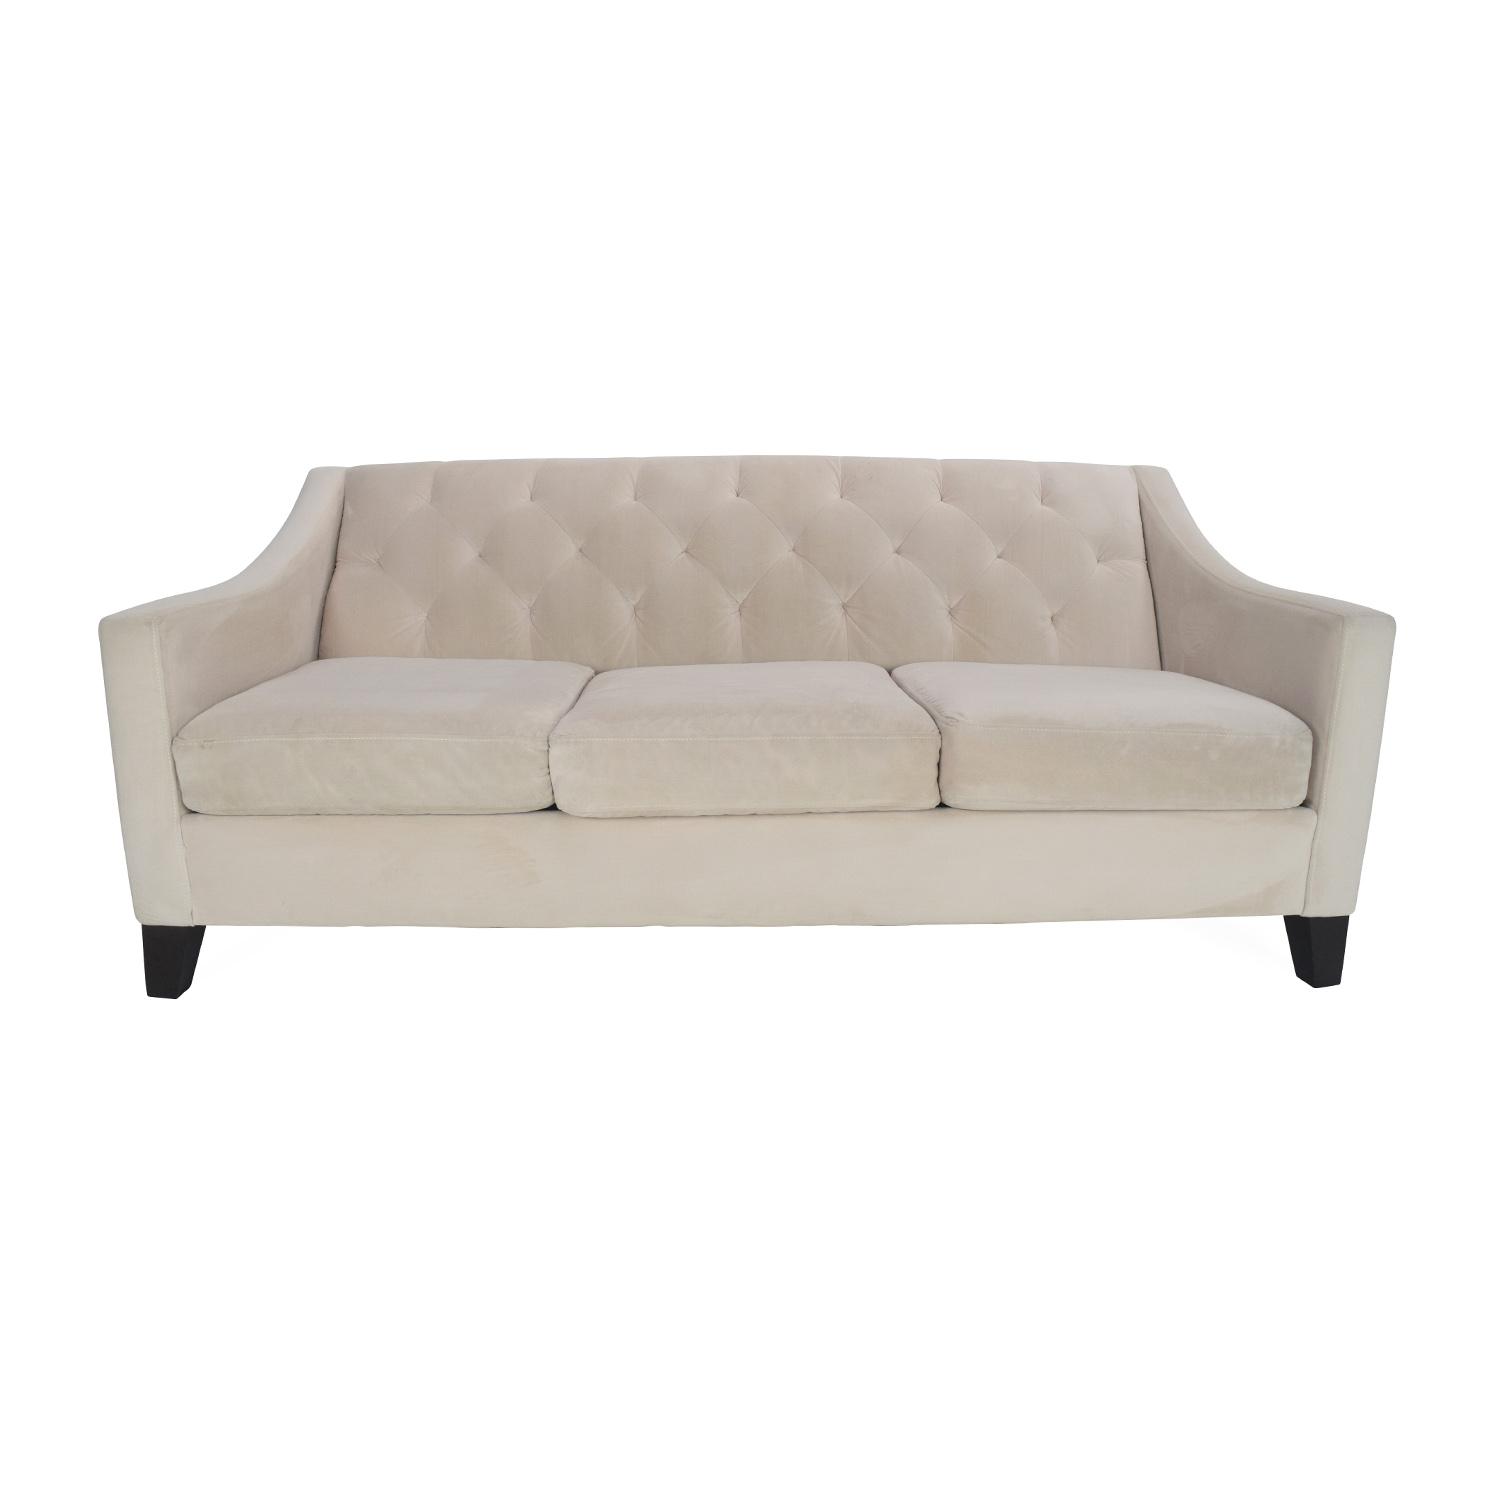 Macys Tufted Sofa Kaleb Tufted Leather Sofa Collection